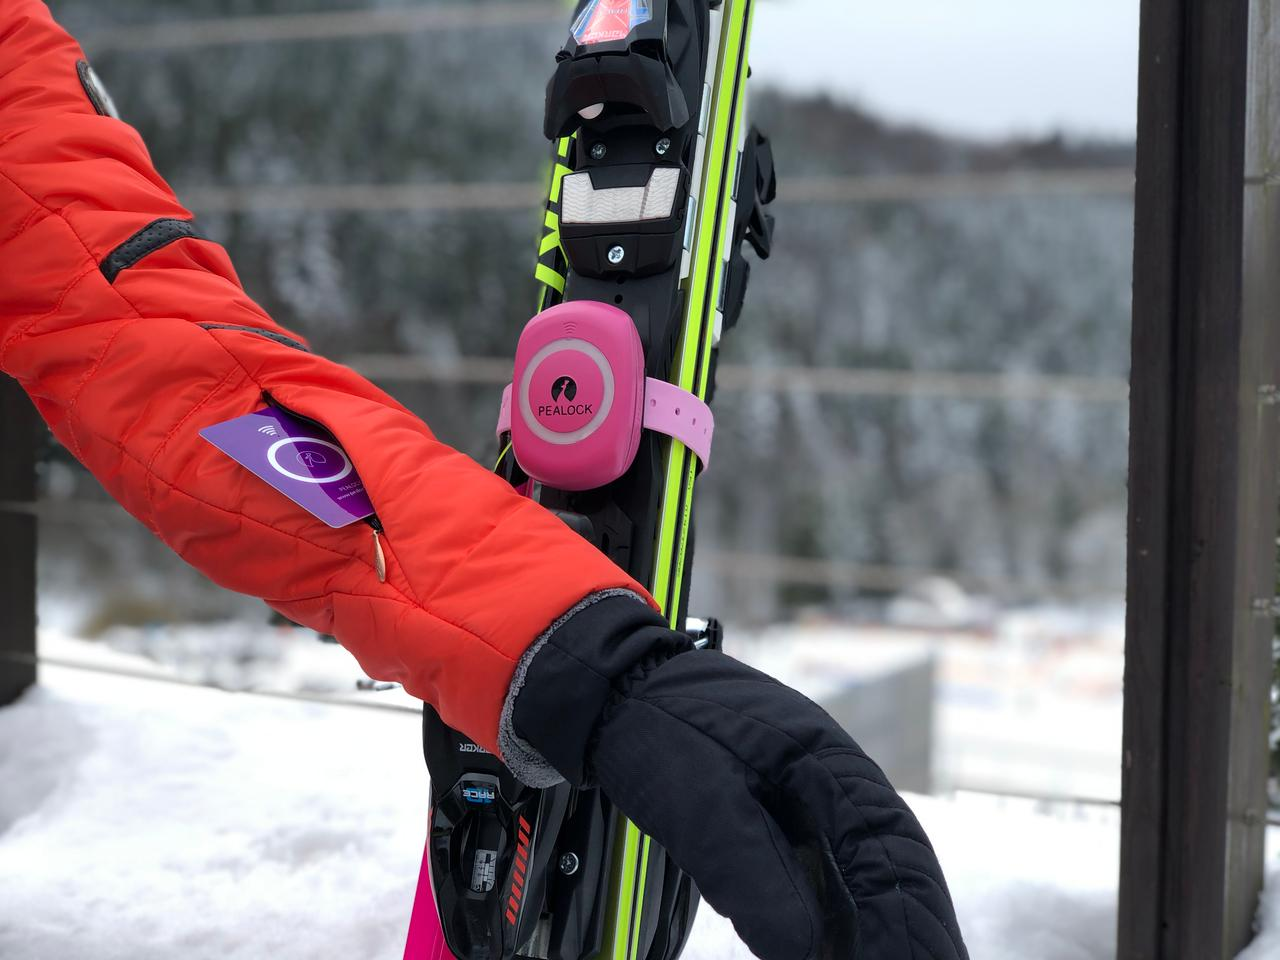 The Pealock can be used on skis or snowboards